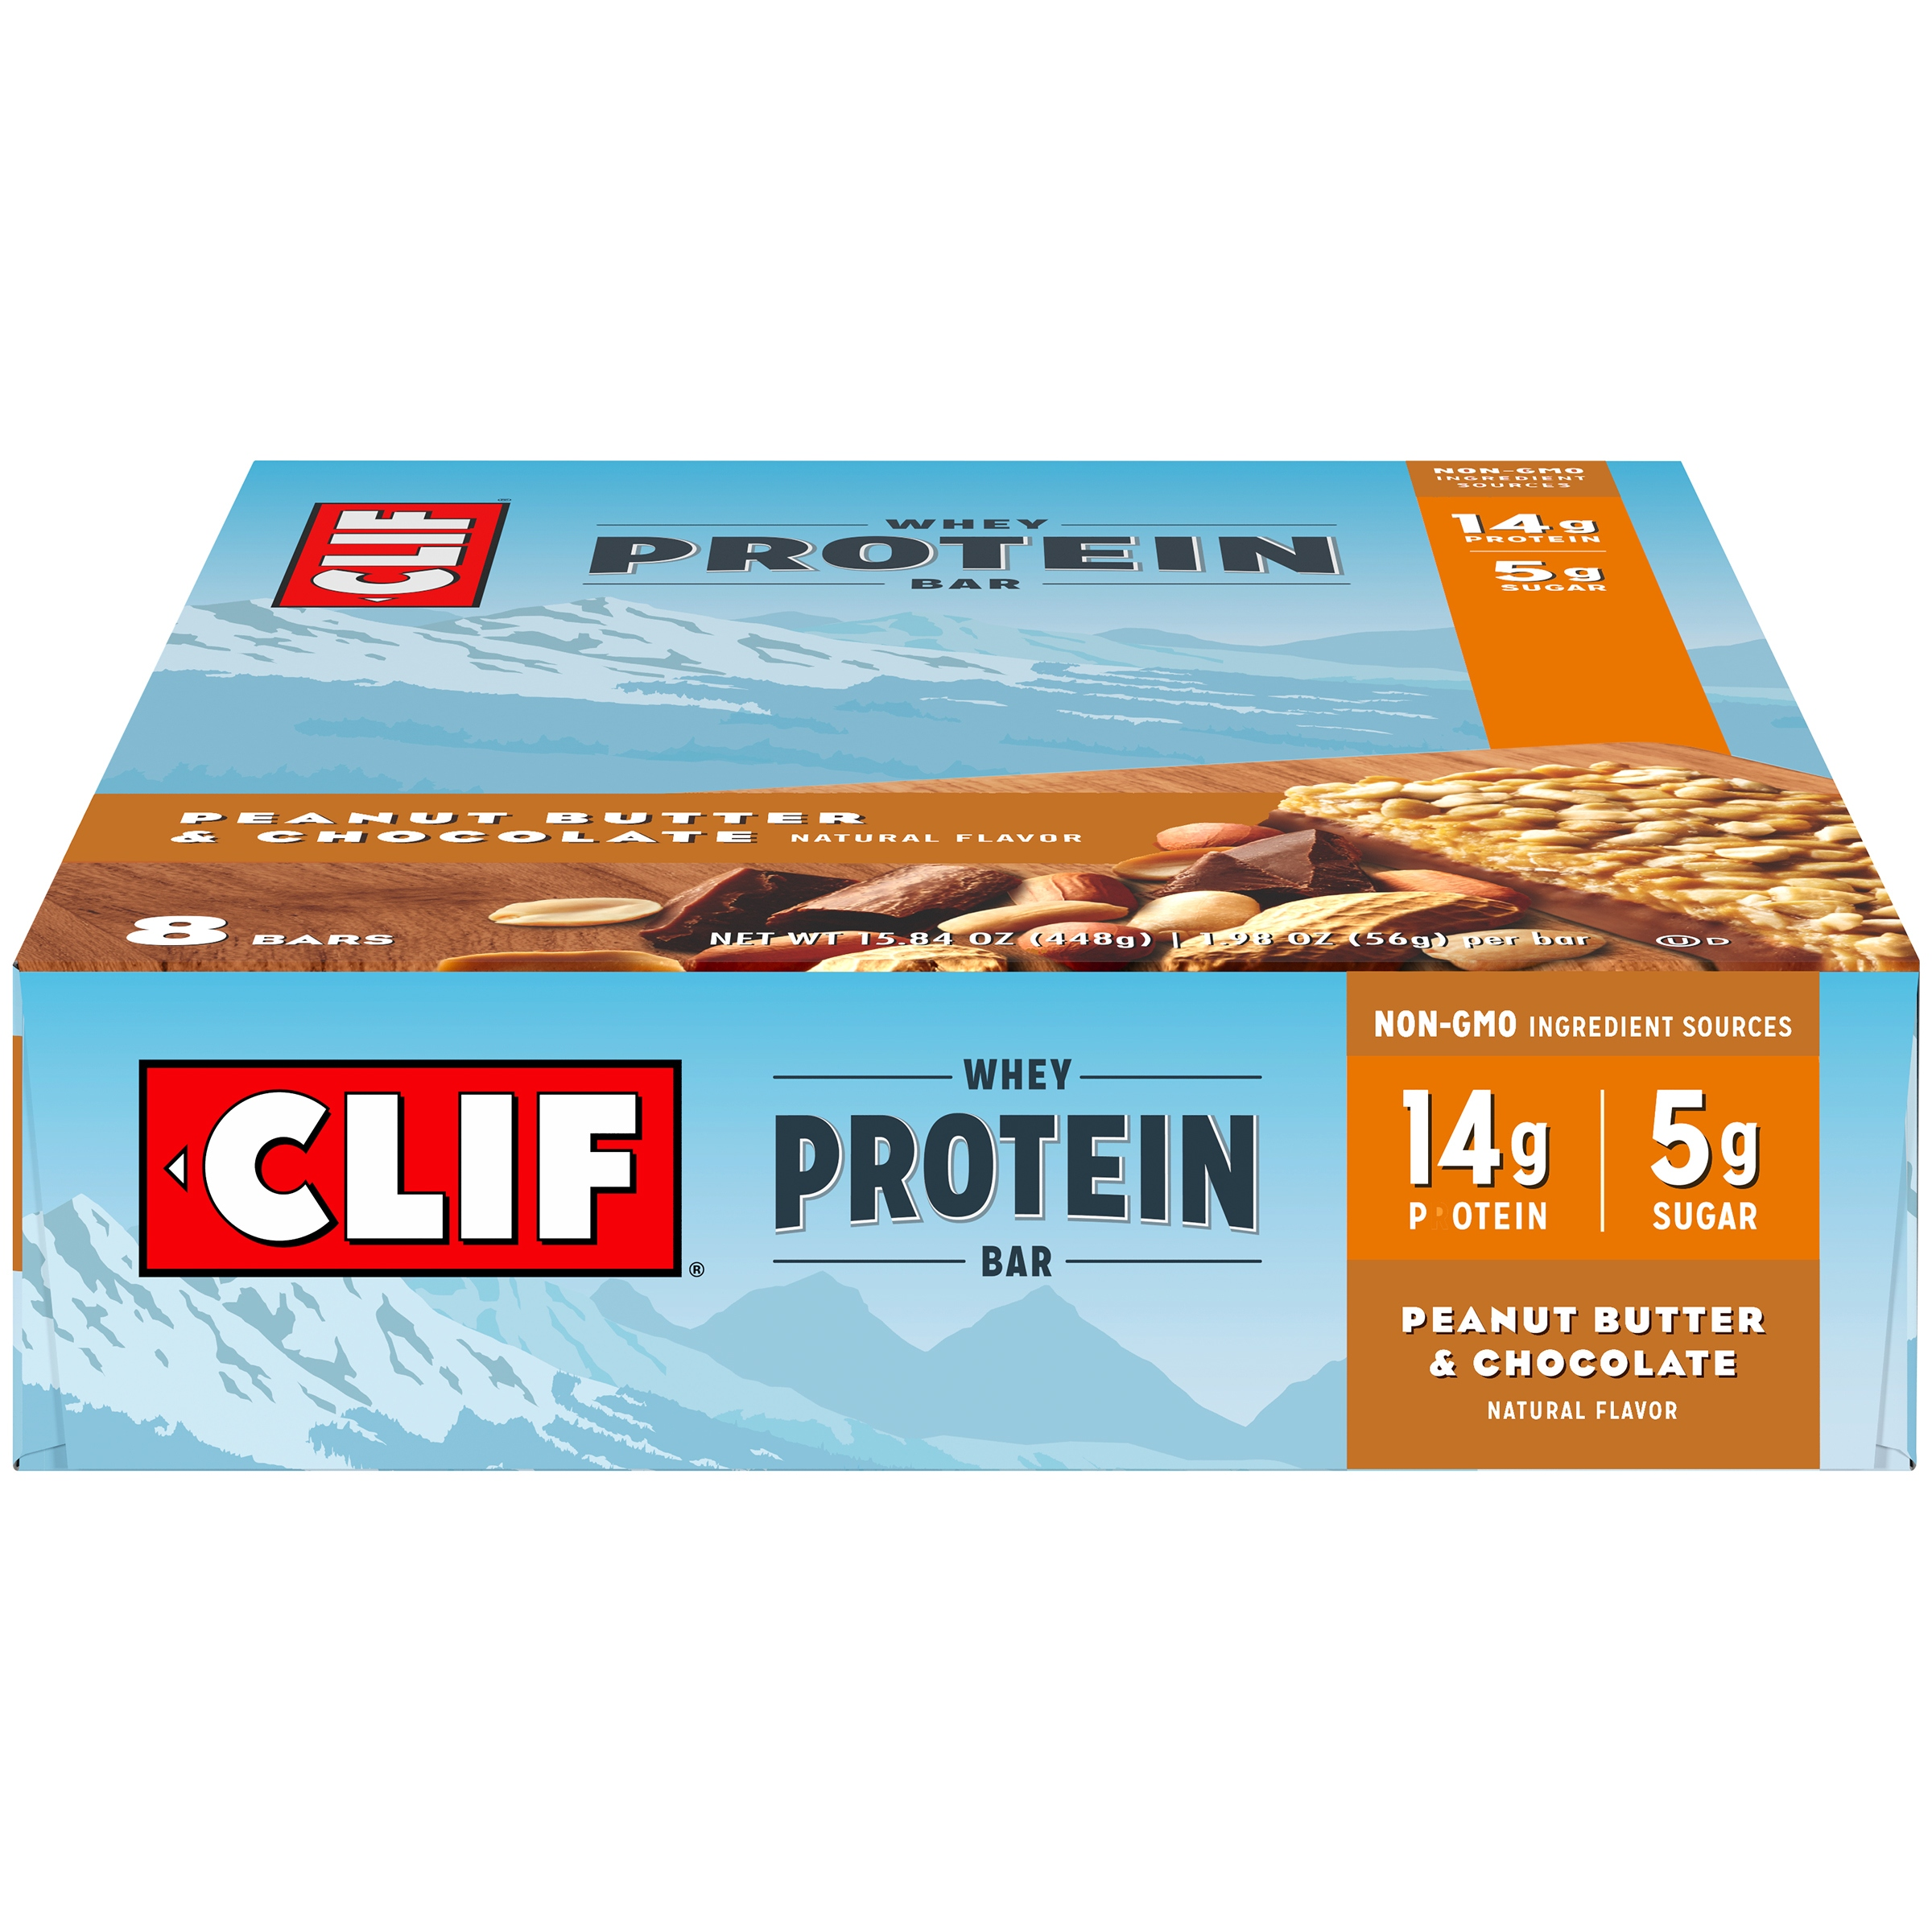 CLIF® Whey Protein Peanut Butter & Chocolate Bar 8 ct Box